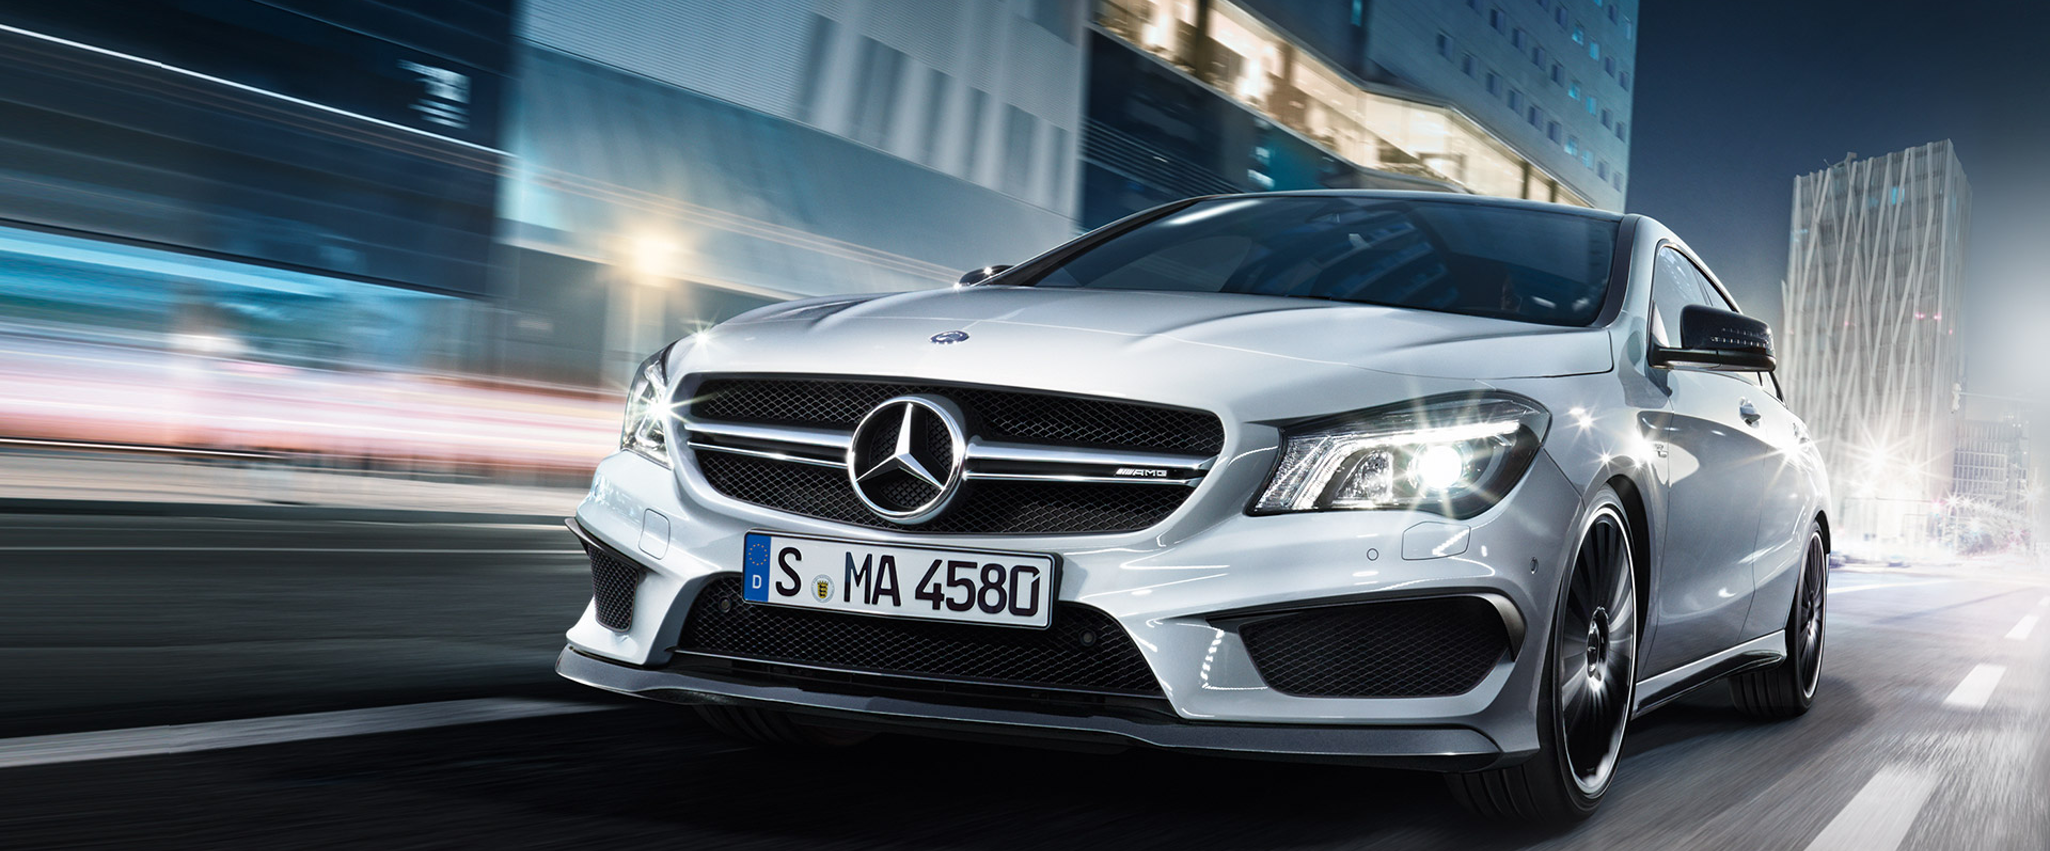 mercedes-benz-cla-x117_wallpaper_04_1920x1200_11-2014